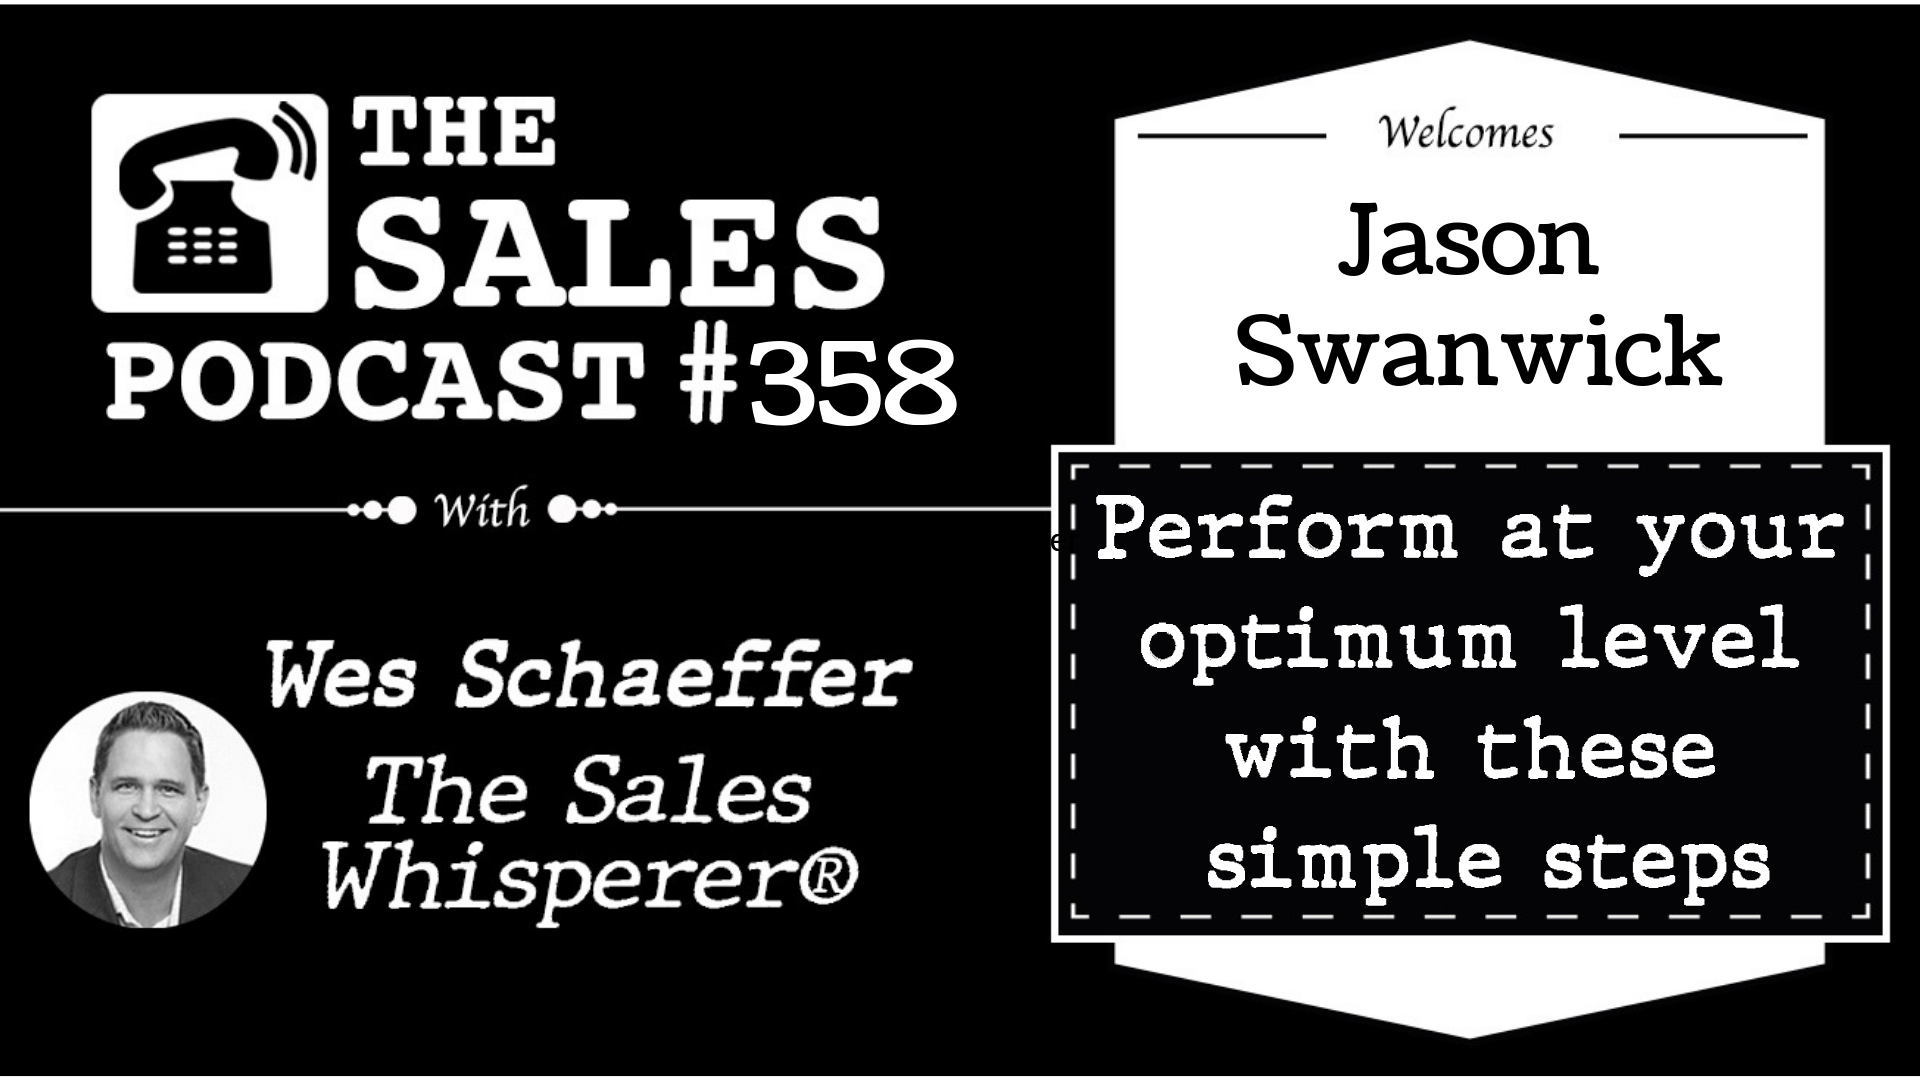 Jason Swanwick a the Sales Podcast